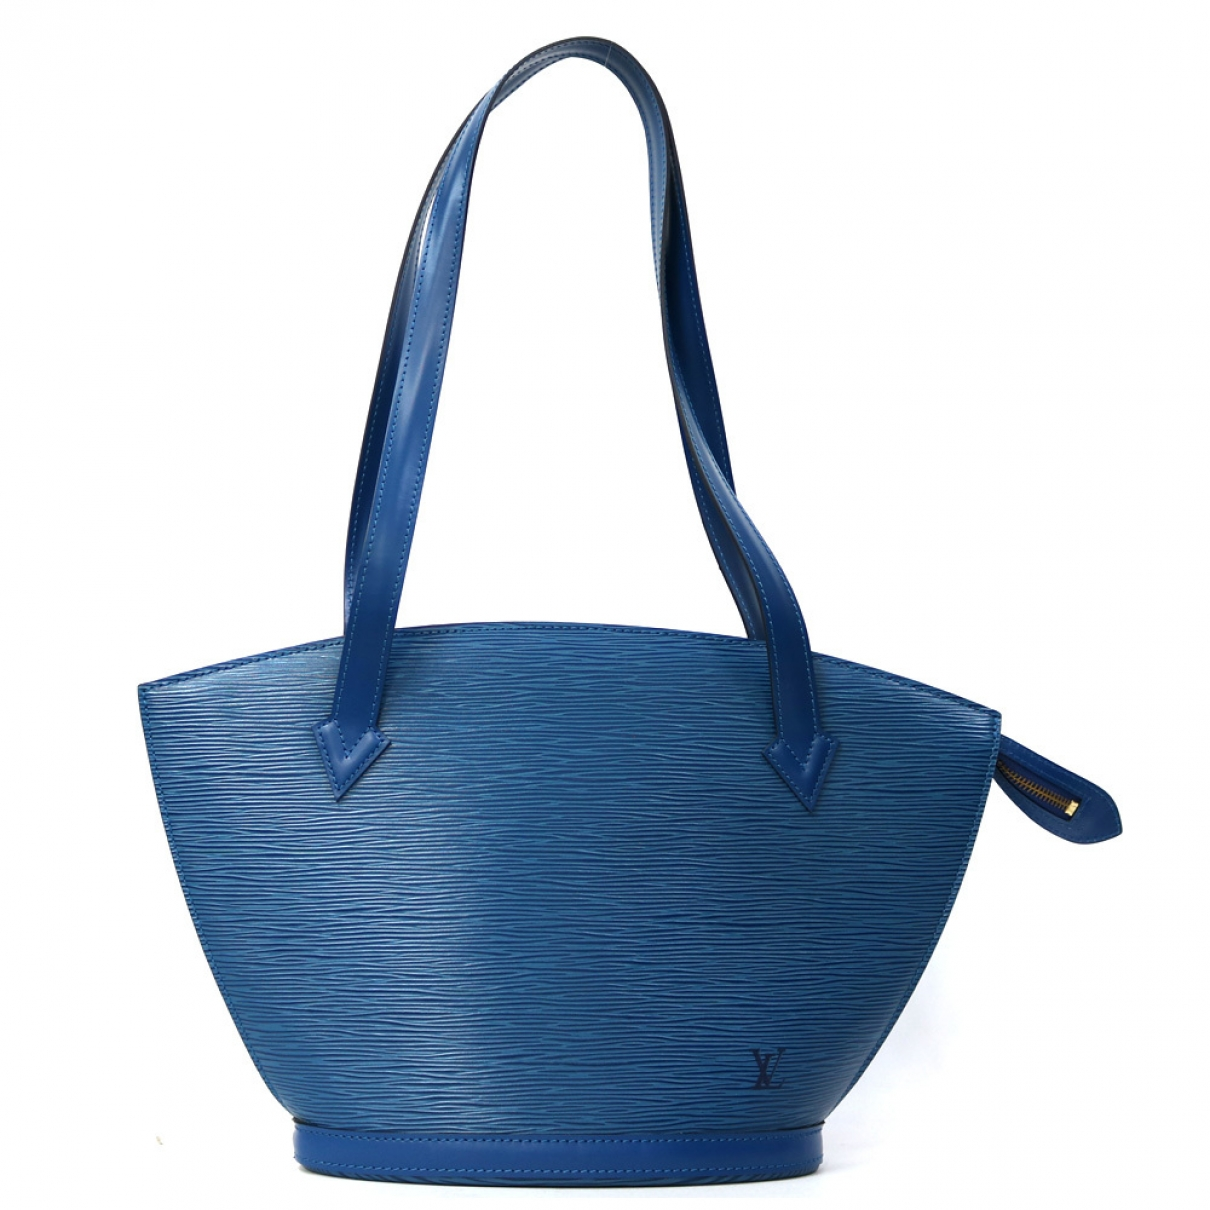 Louis Vuitton Saint Jacques Blue Leather handbag for Women \N